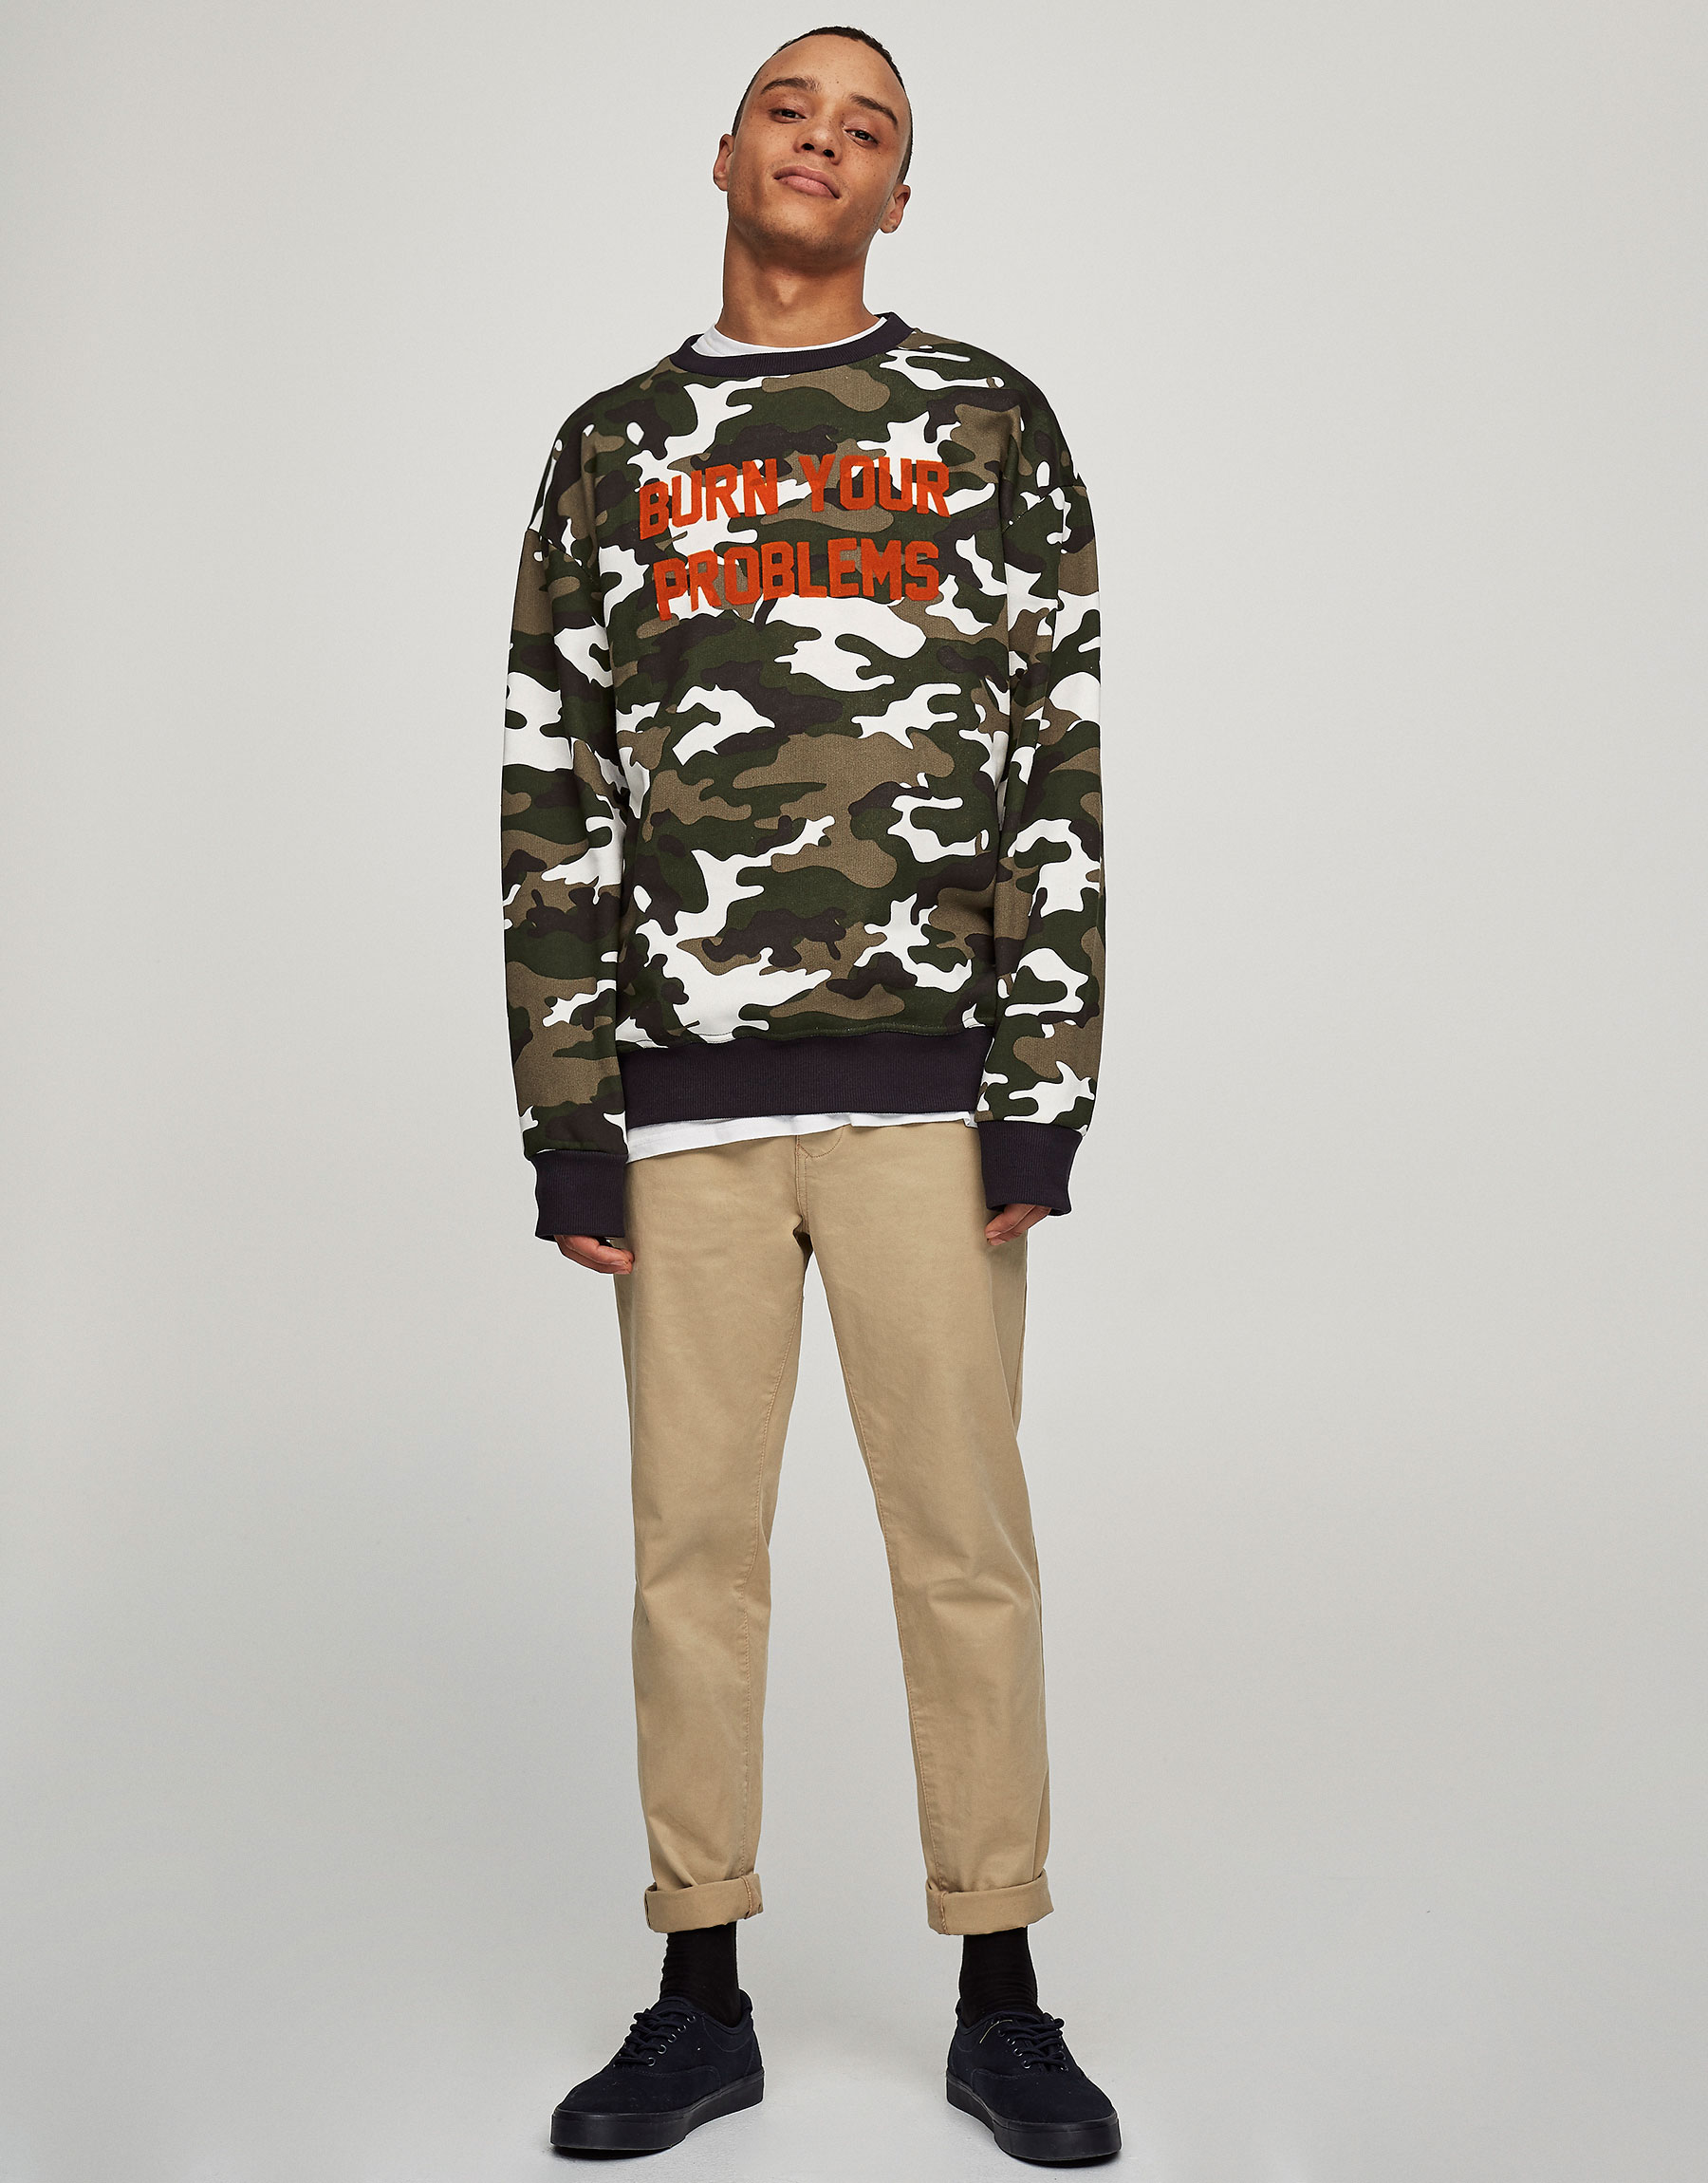 Camouflage sweatshirt with slogan